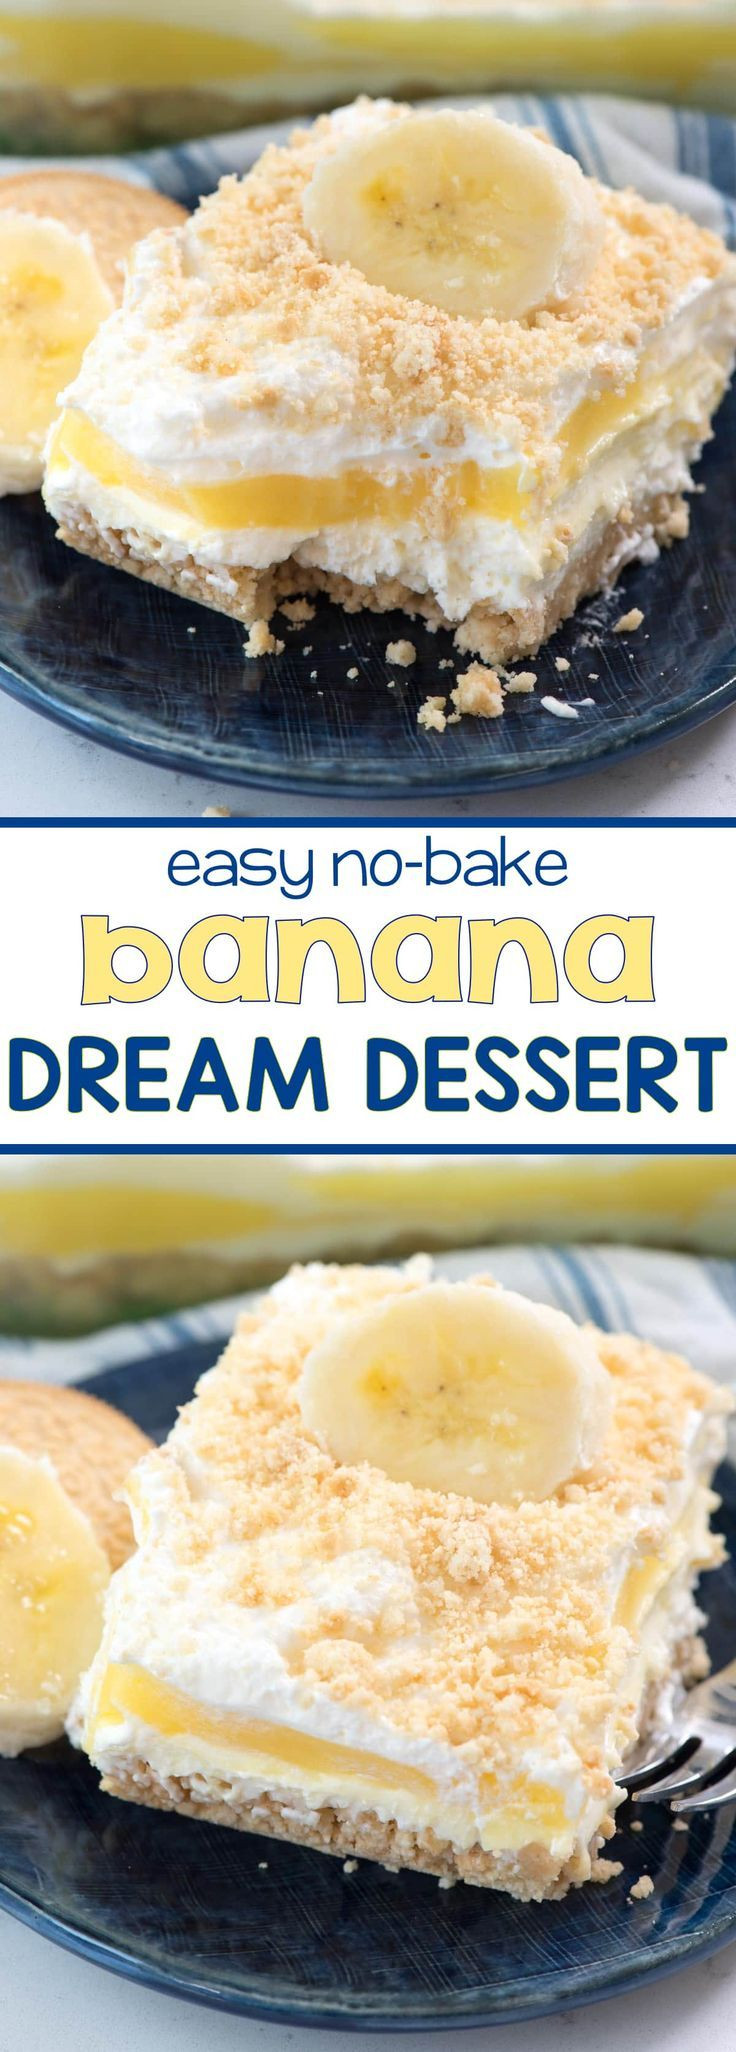 Easy Banana Desserts No Bake  Best 25 Easy desserts ideas on Pinterest